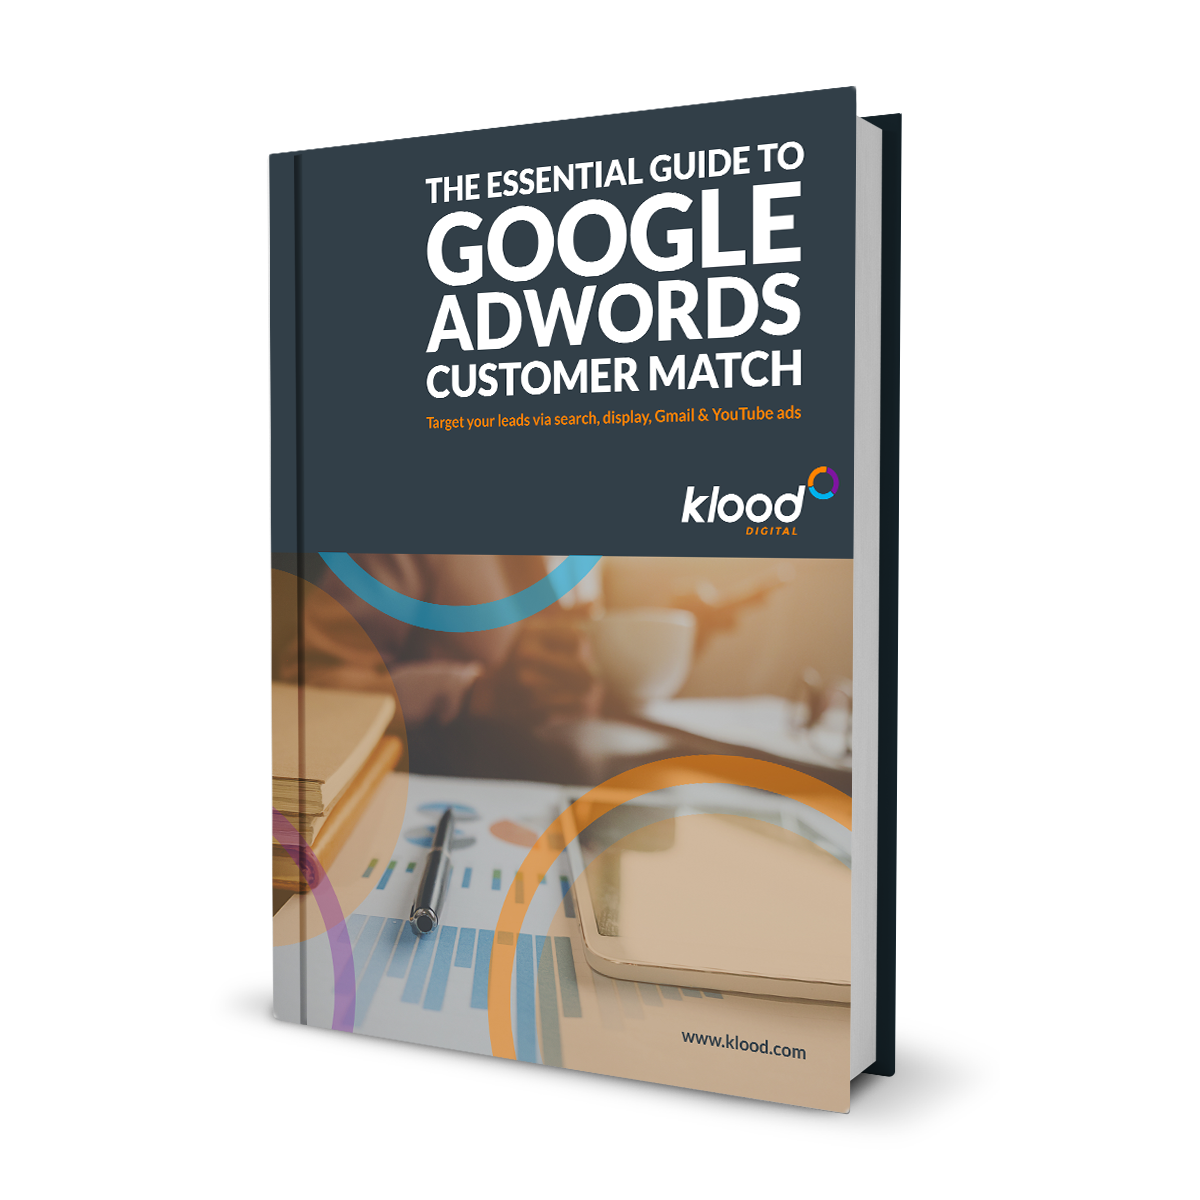 Guide to using google adwords - customer match